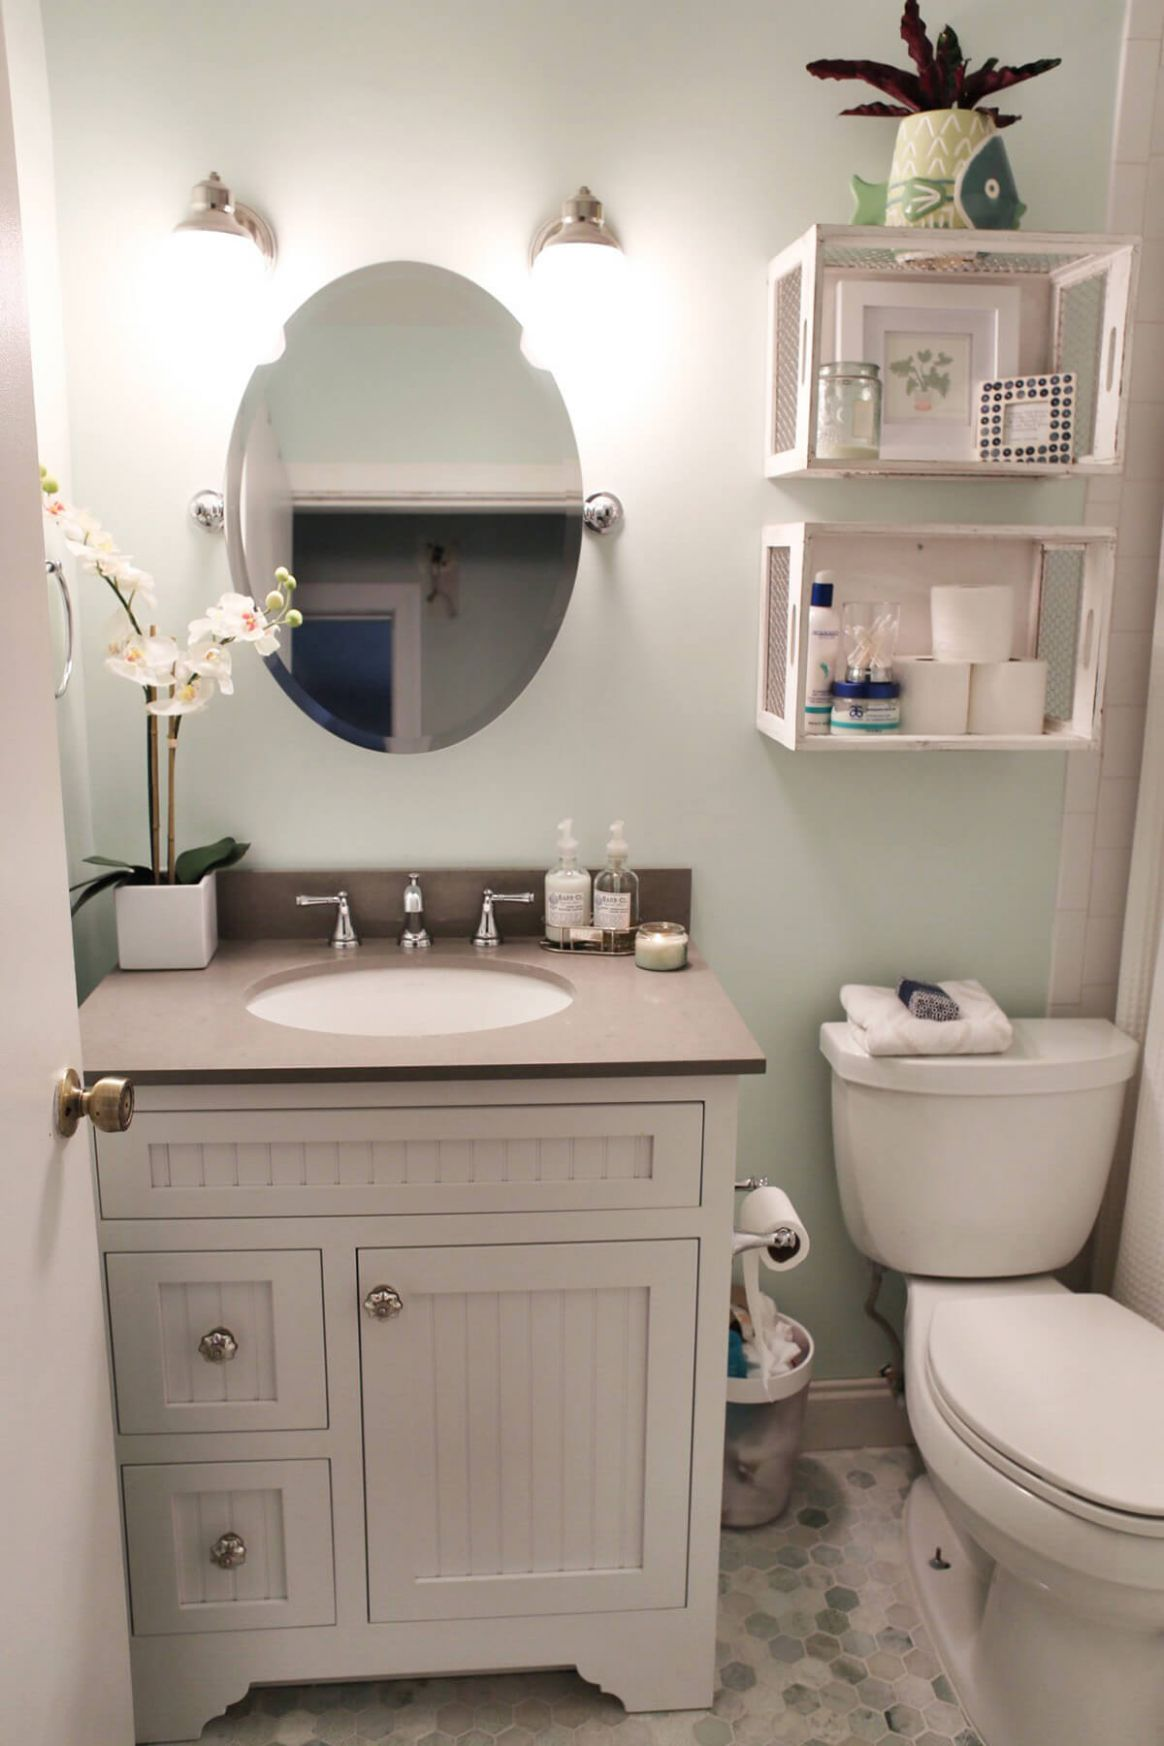 12 Best Over the Toilet Storage Ideas and Designs for 12 - bathroom ideas above toilet